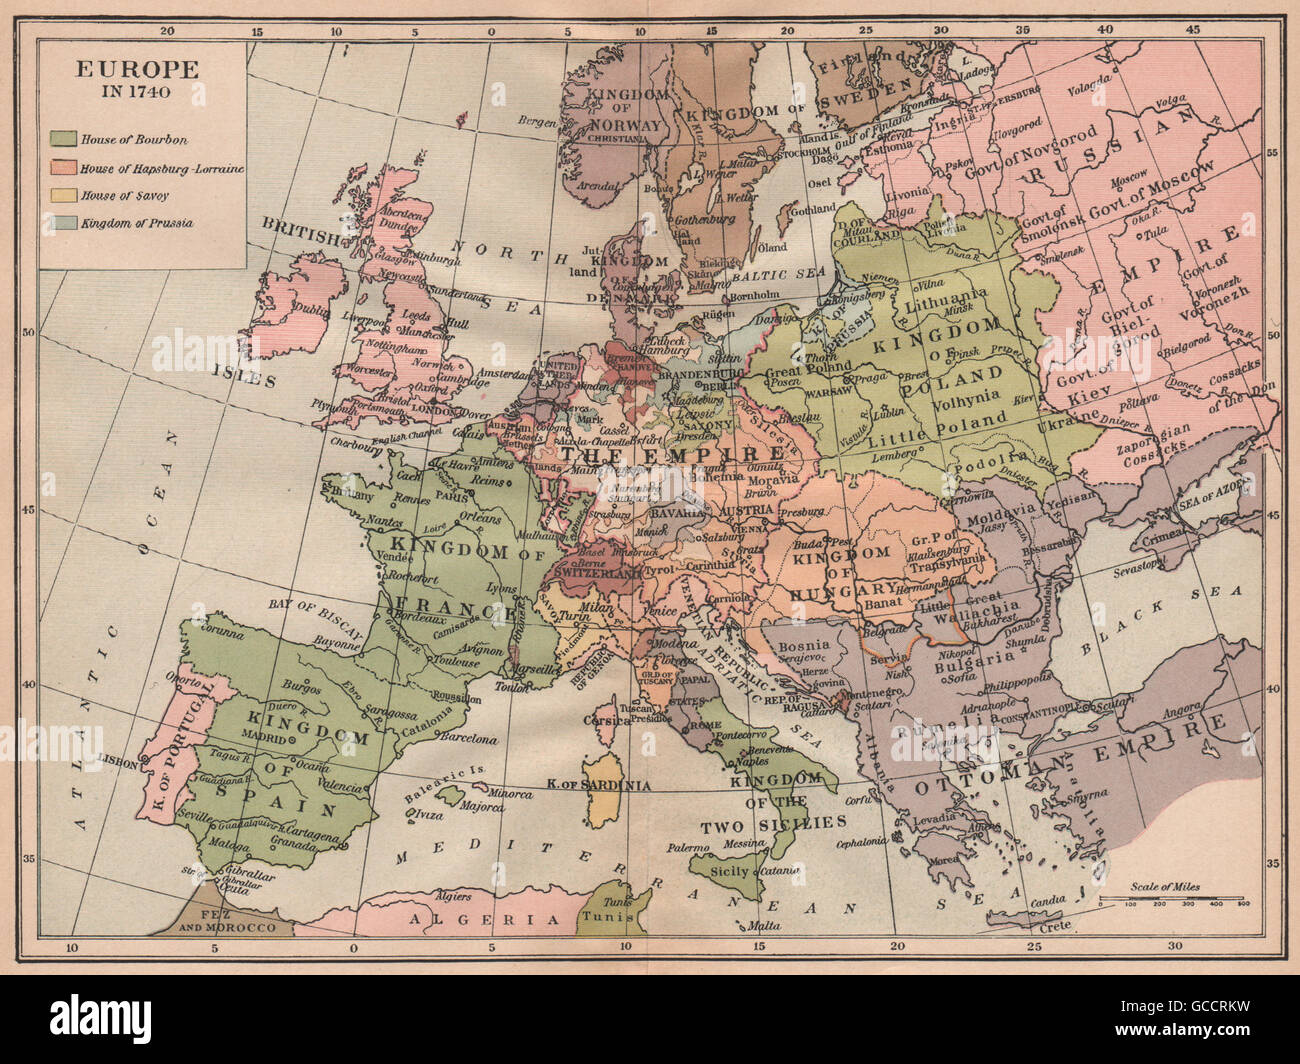 EUROPE IN 1740. Ottoman Empire. Kingdom of Poland. Hungary, 1917 vintage map